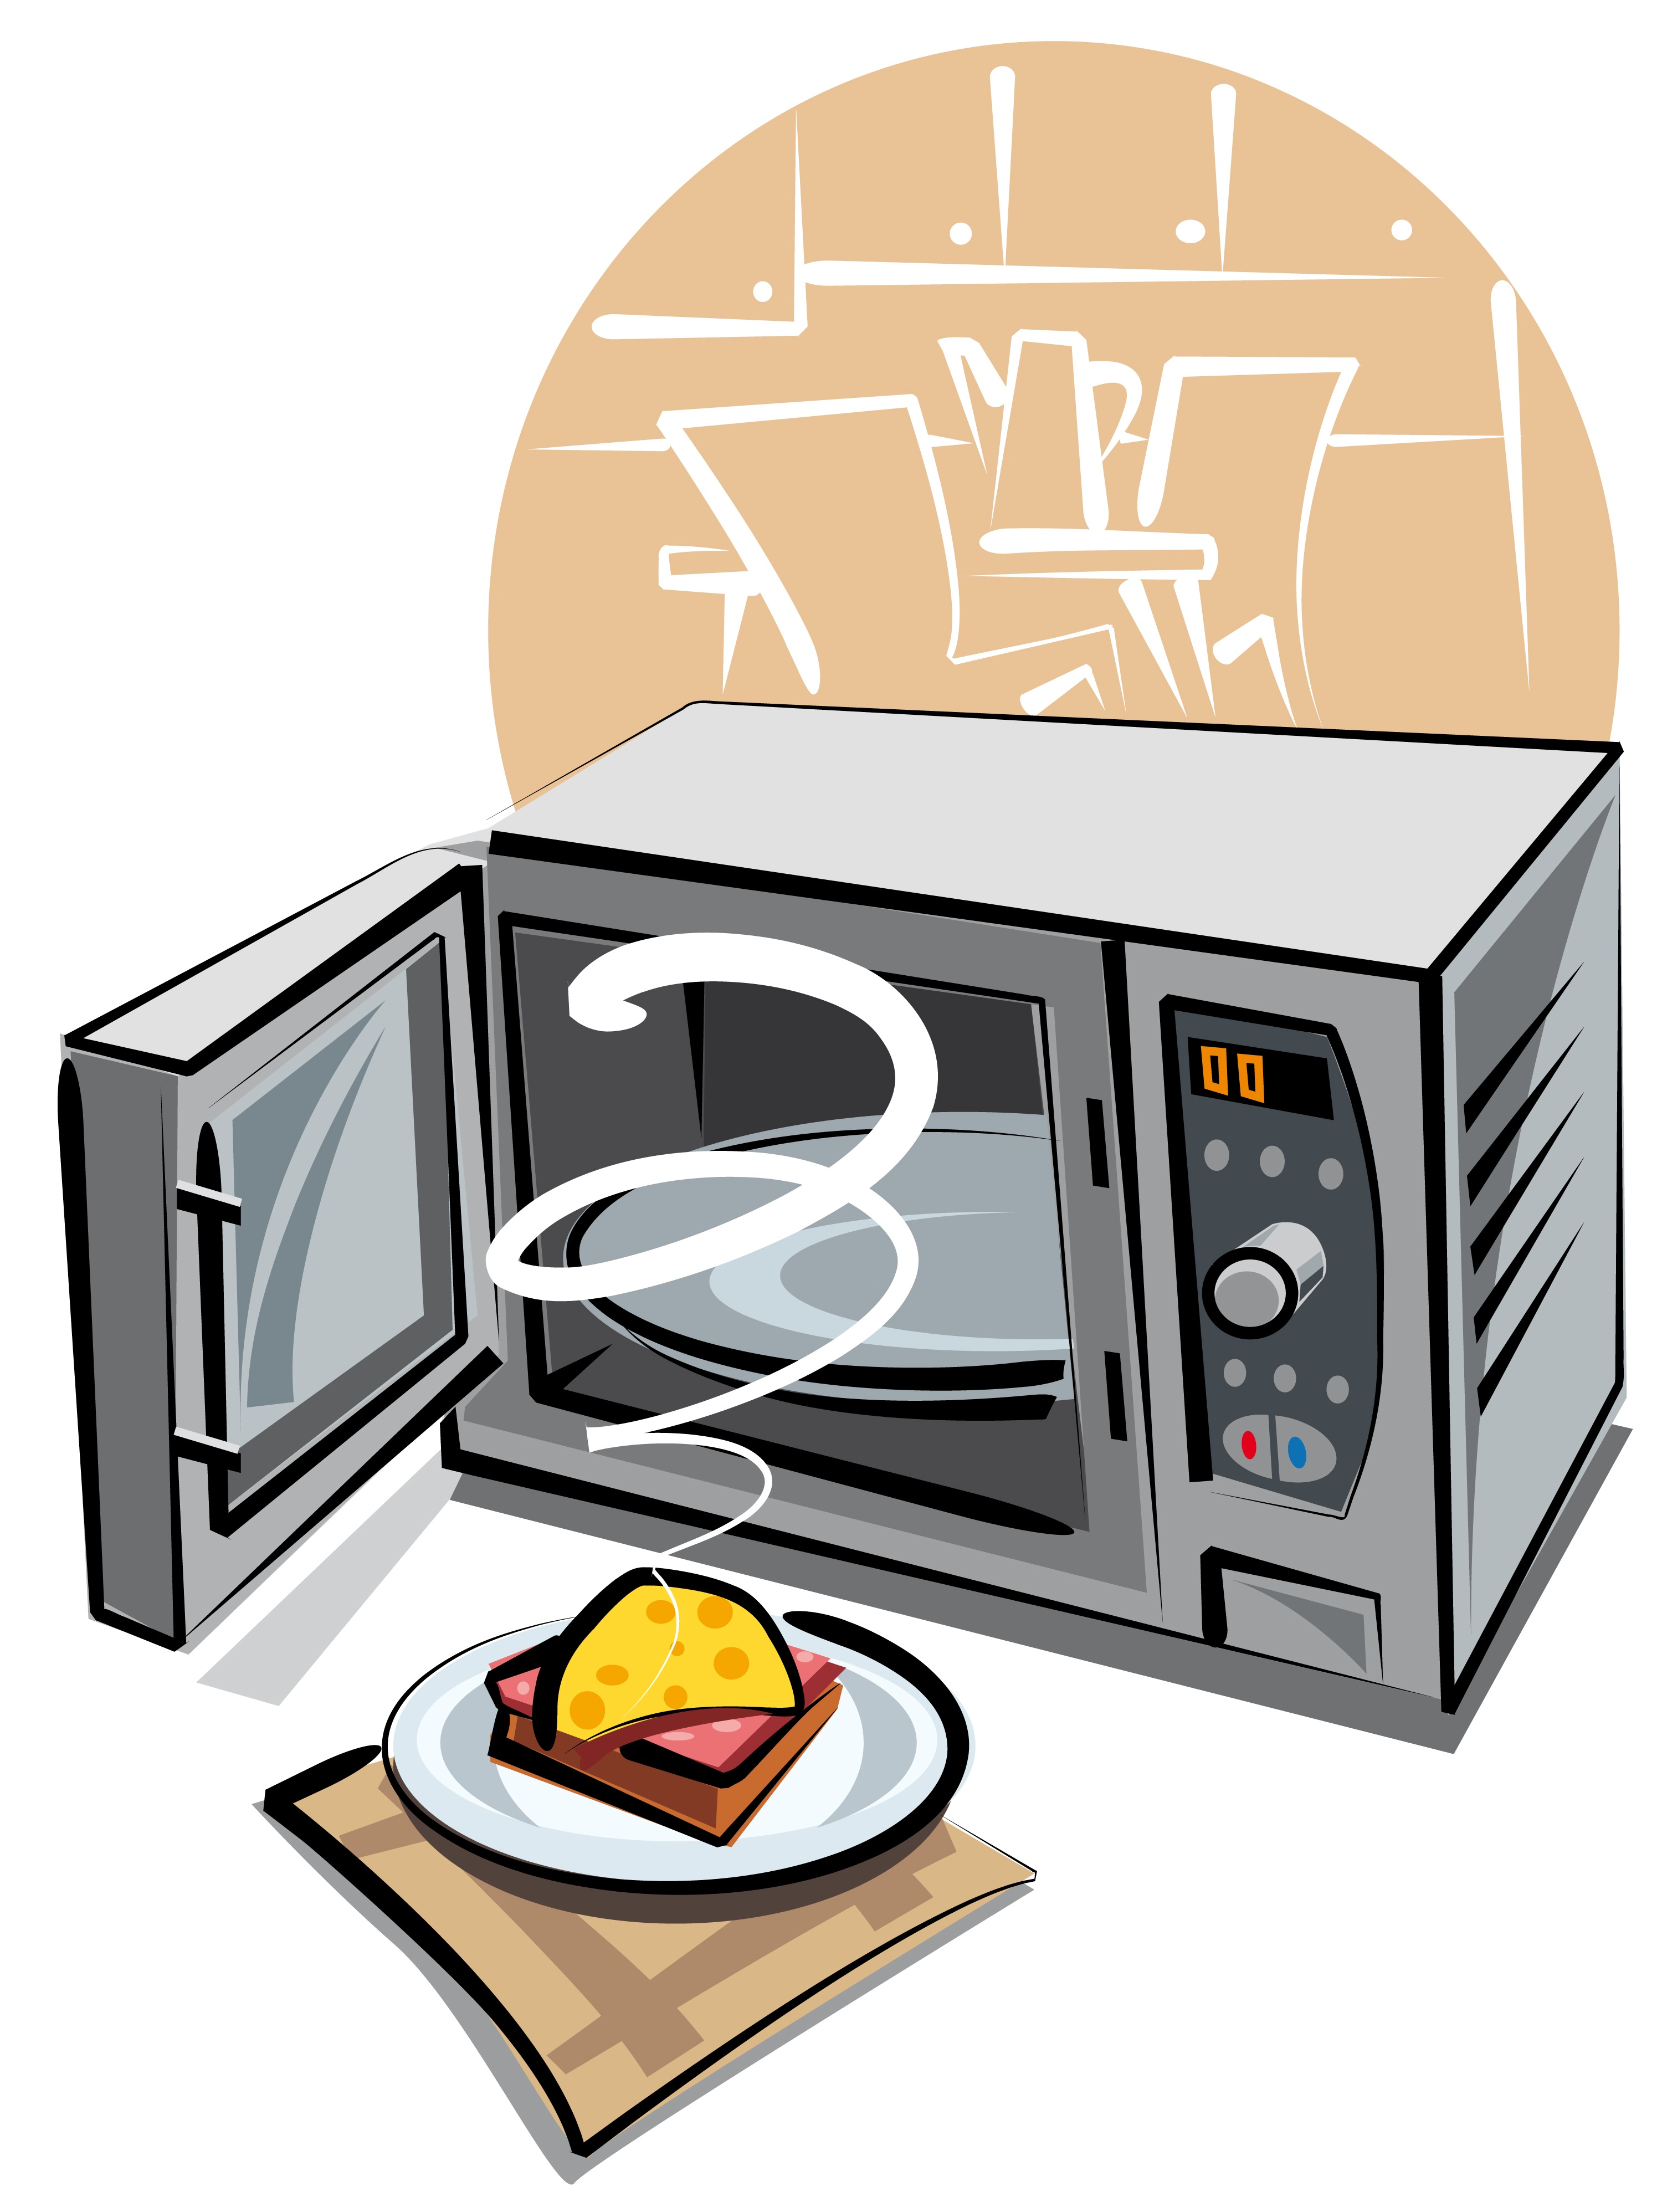 Cartoon Microwave Oven ~ Microwaves a hot potato laura bond health coach